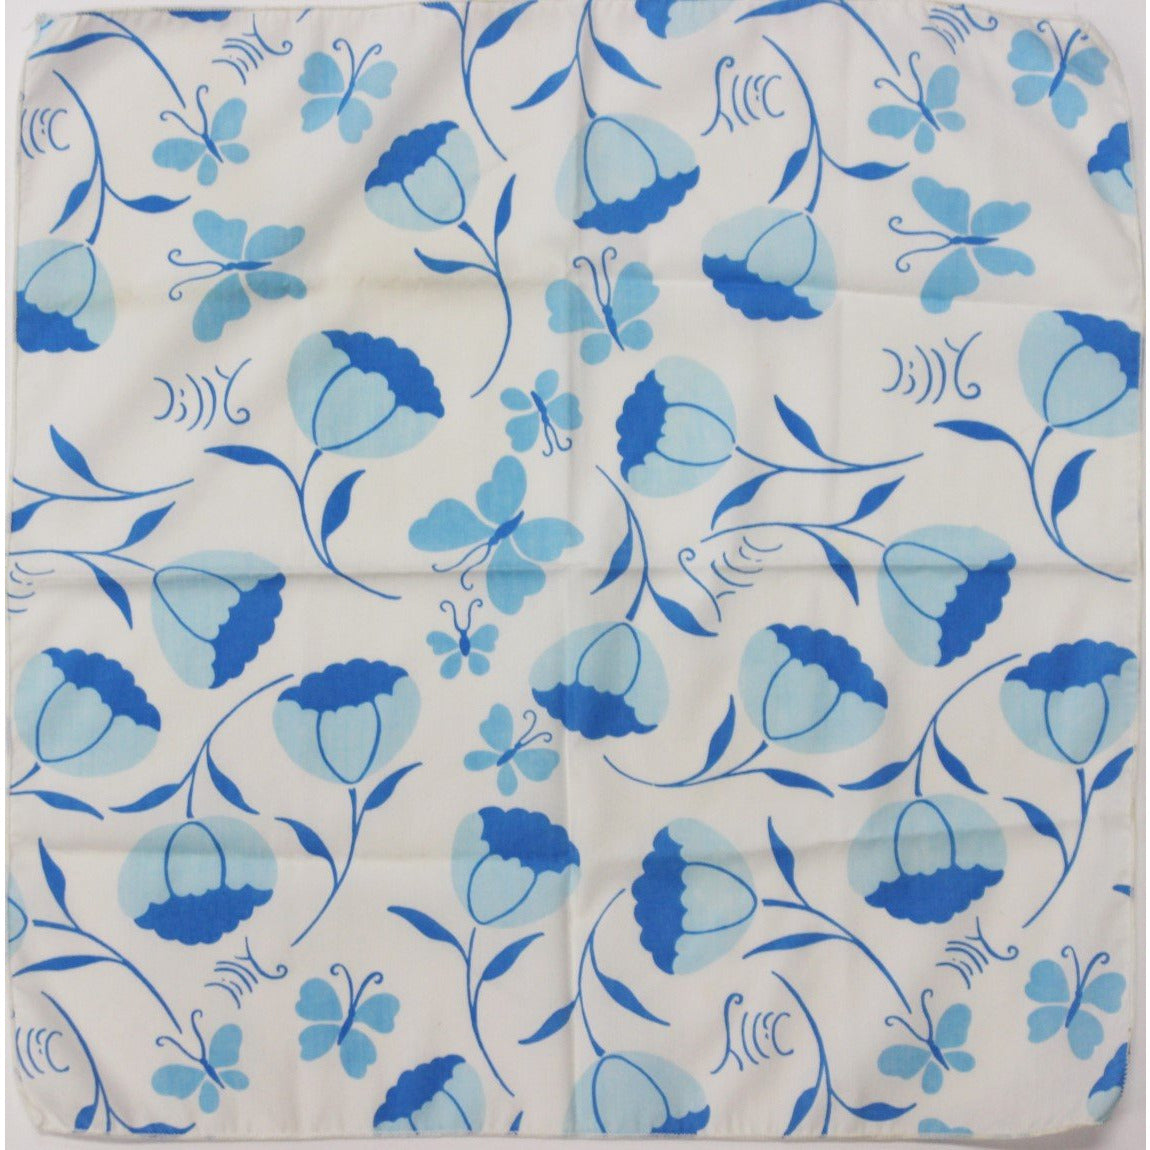 Lilly Pulitzer Blue Tulips Cocktail Napkins